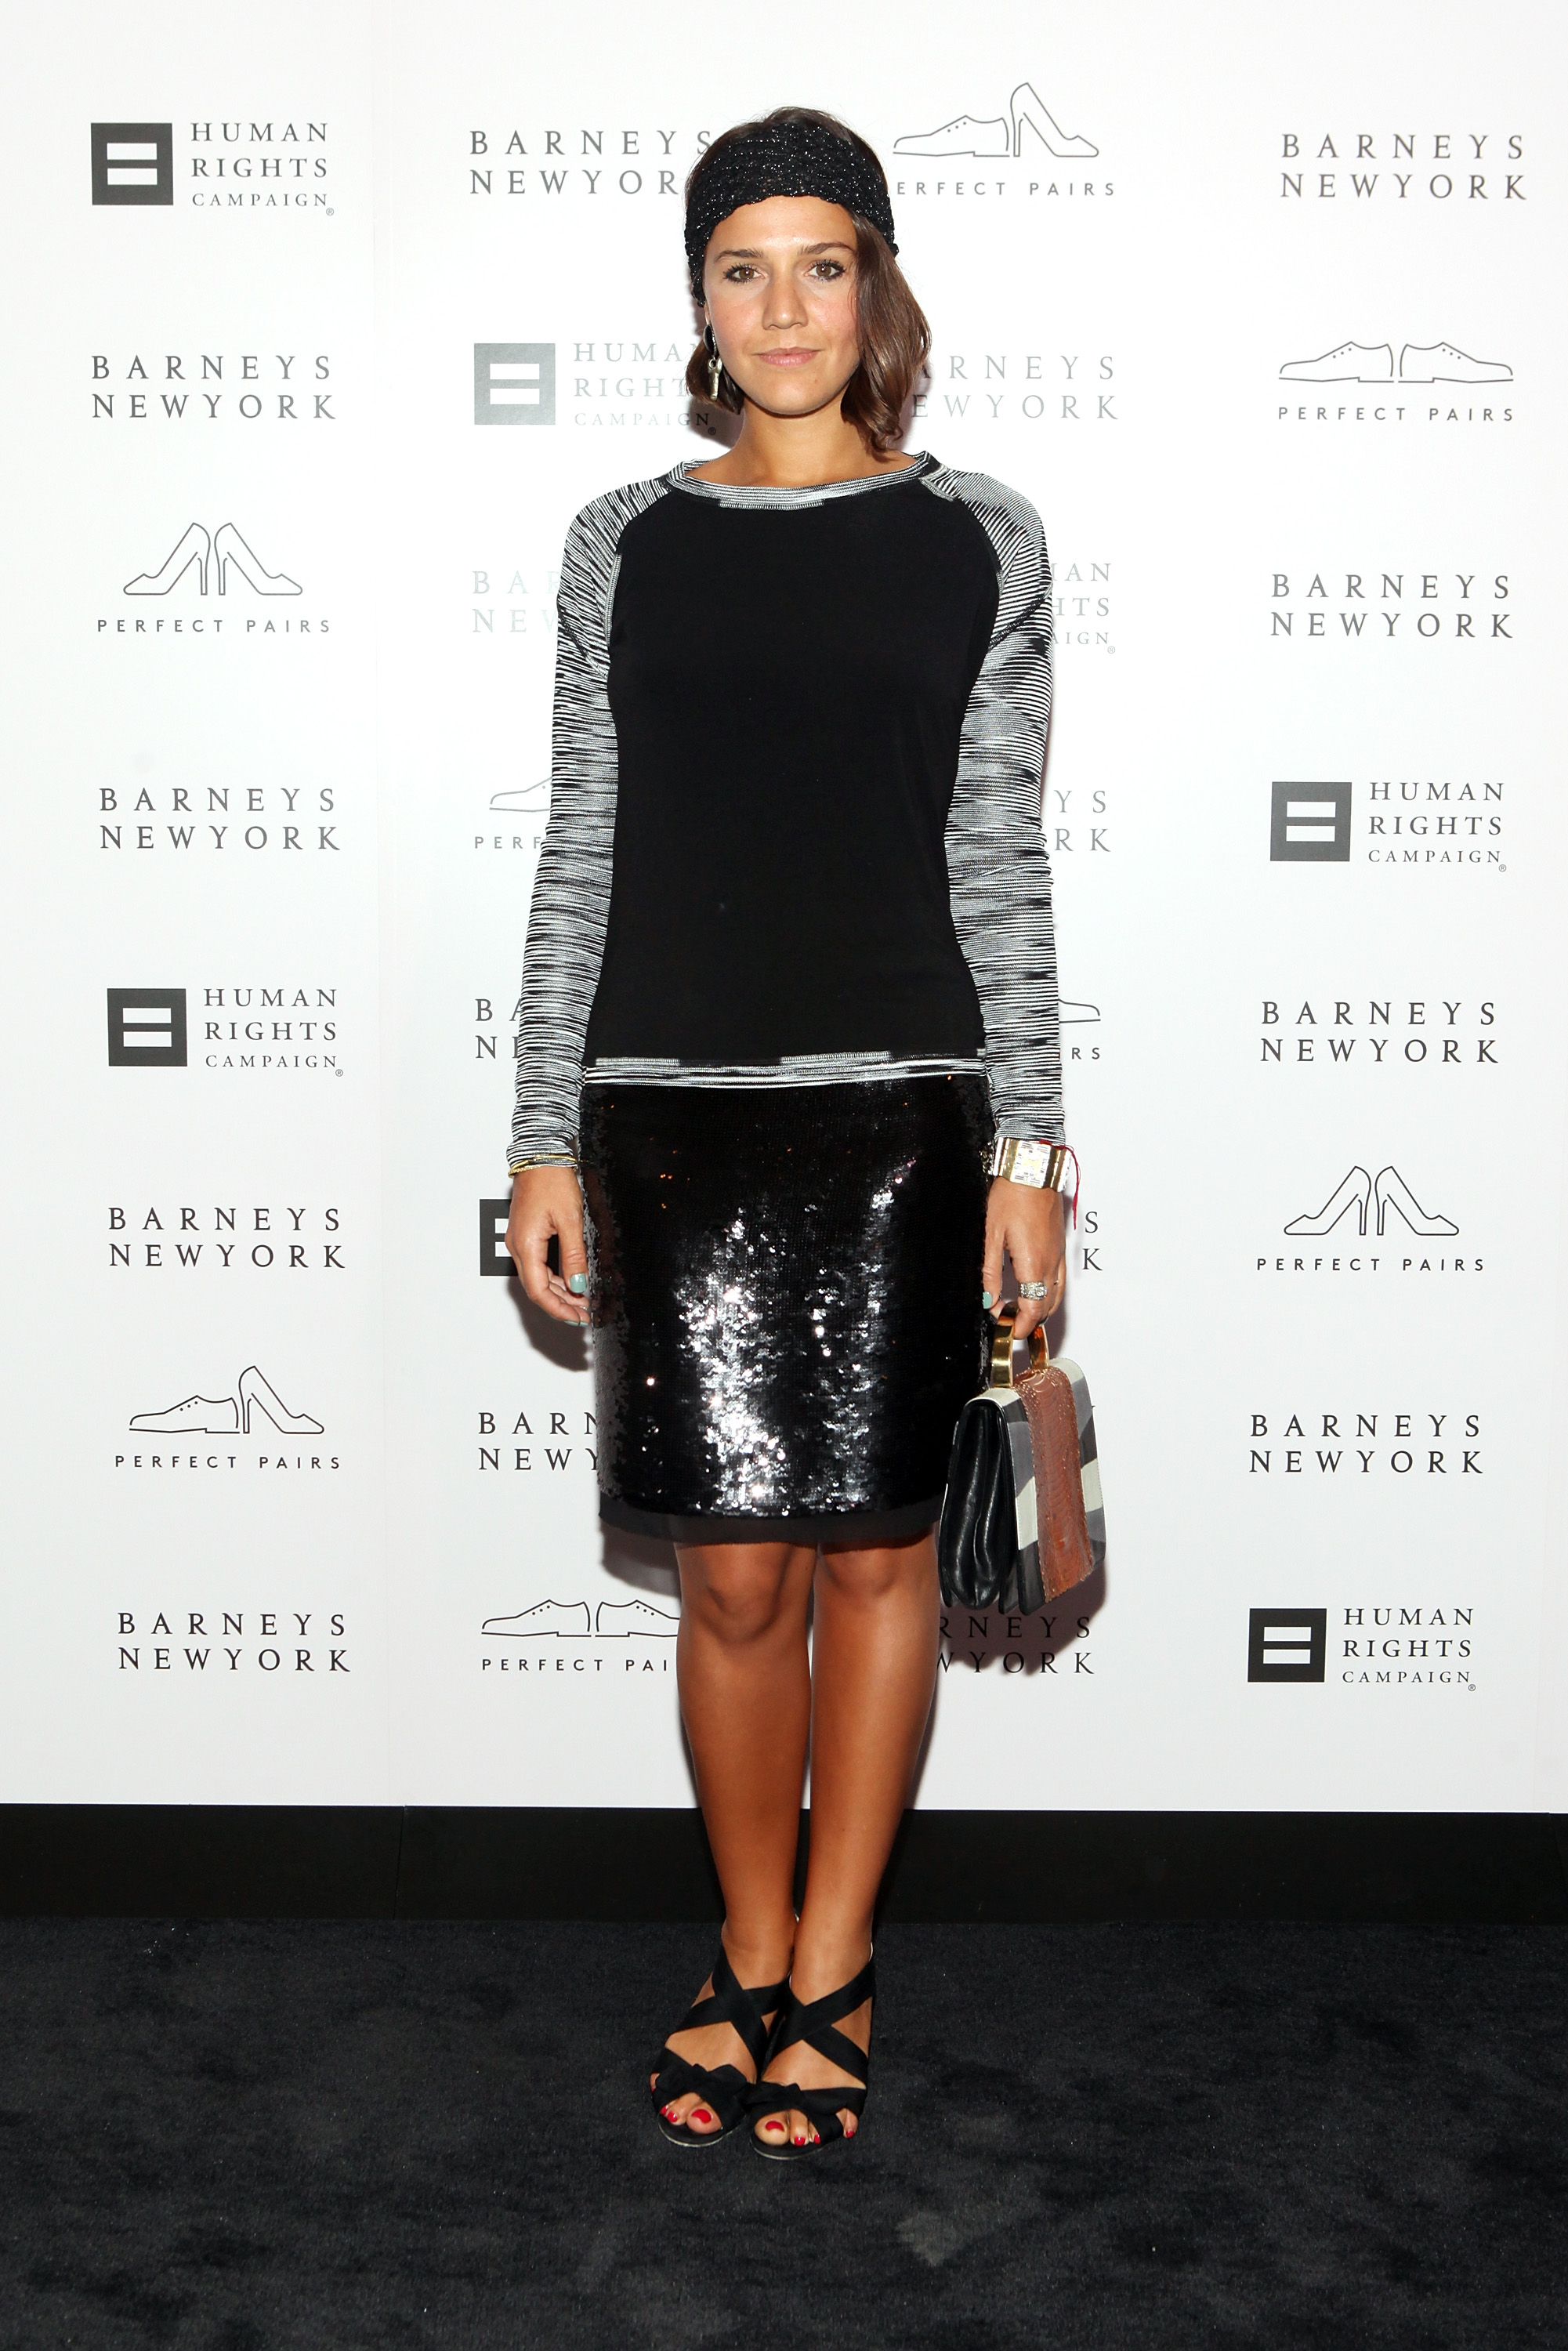 Margherita Missoni brought a little bit of sparkle to her evening attire at the Barneys cocktail party in NYC via a shimmery black skirt.